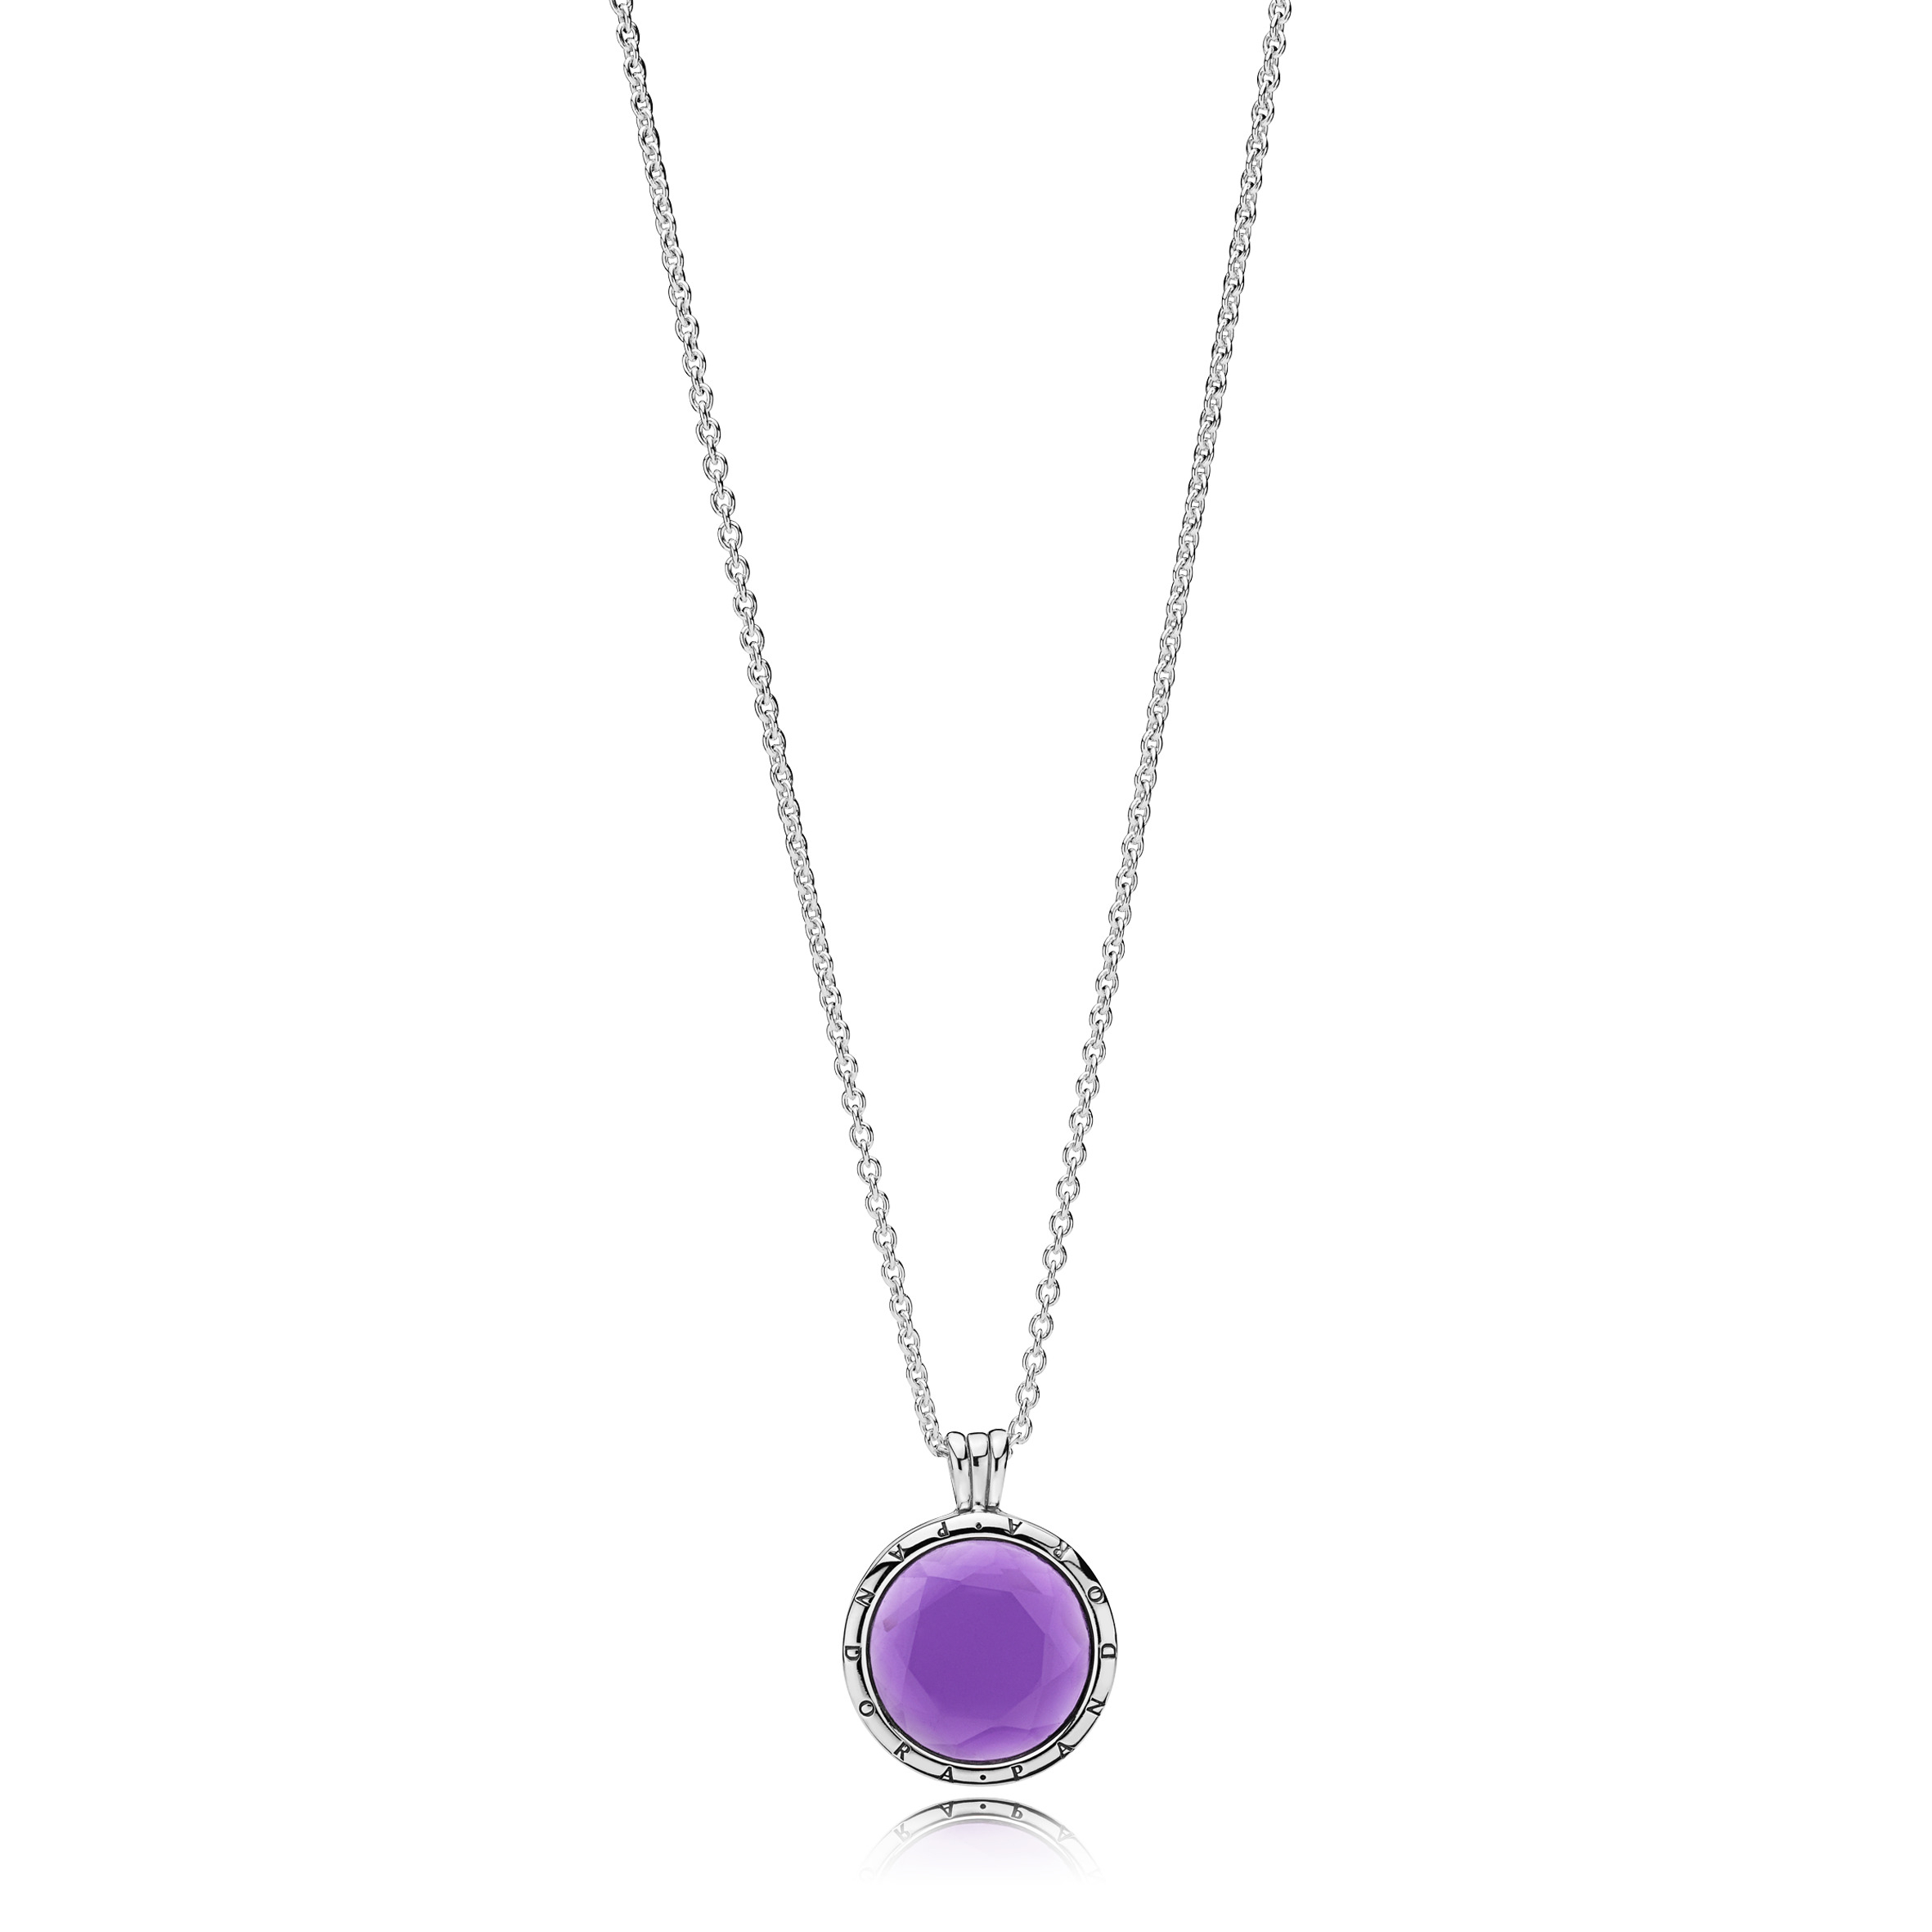 Pandora Faceted Floating Locket Necklace Within Most Up To Date Pandora Lockets Logo Necklaces (View 16 of 25)